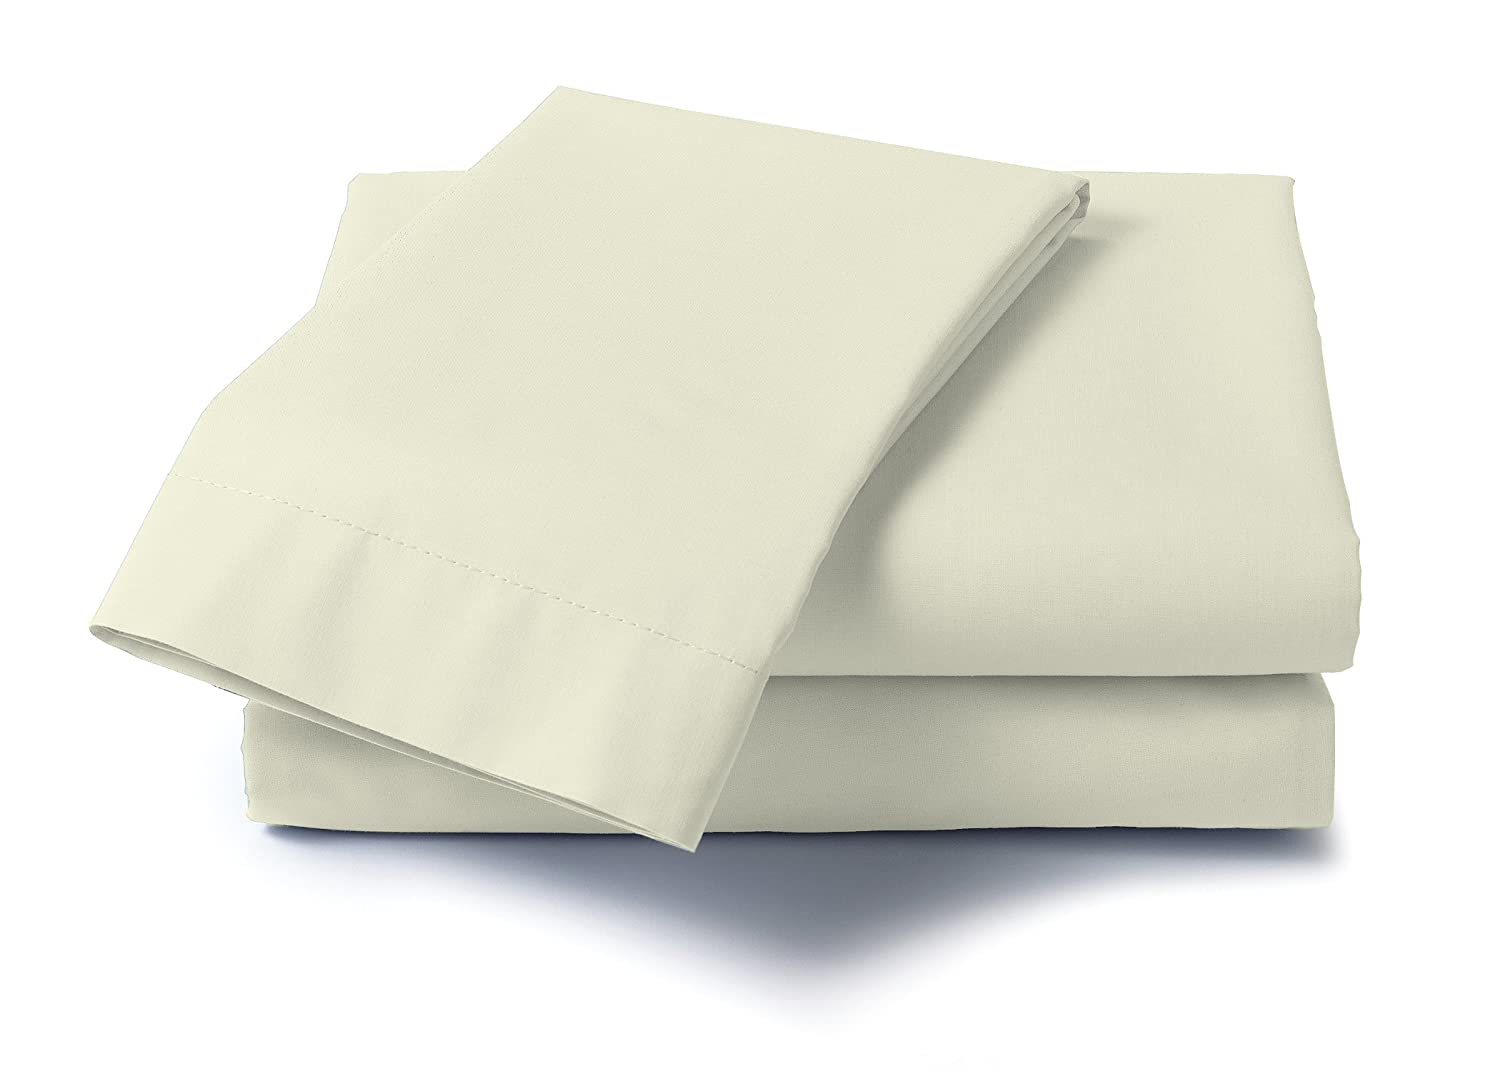 White 21210 Dreamz 400 Thread Count Specialty Sheet Set for King Size Memory Foam Mattress